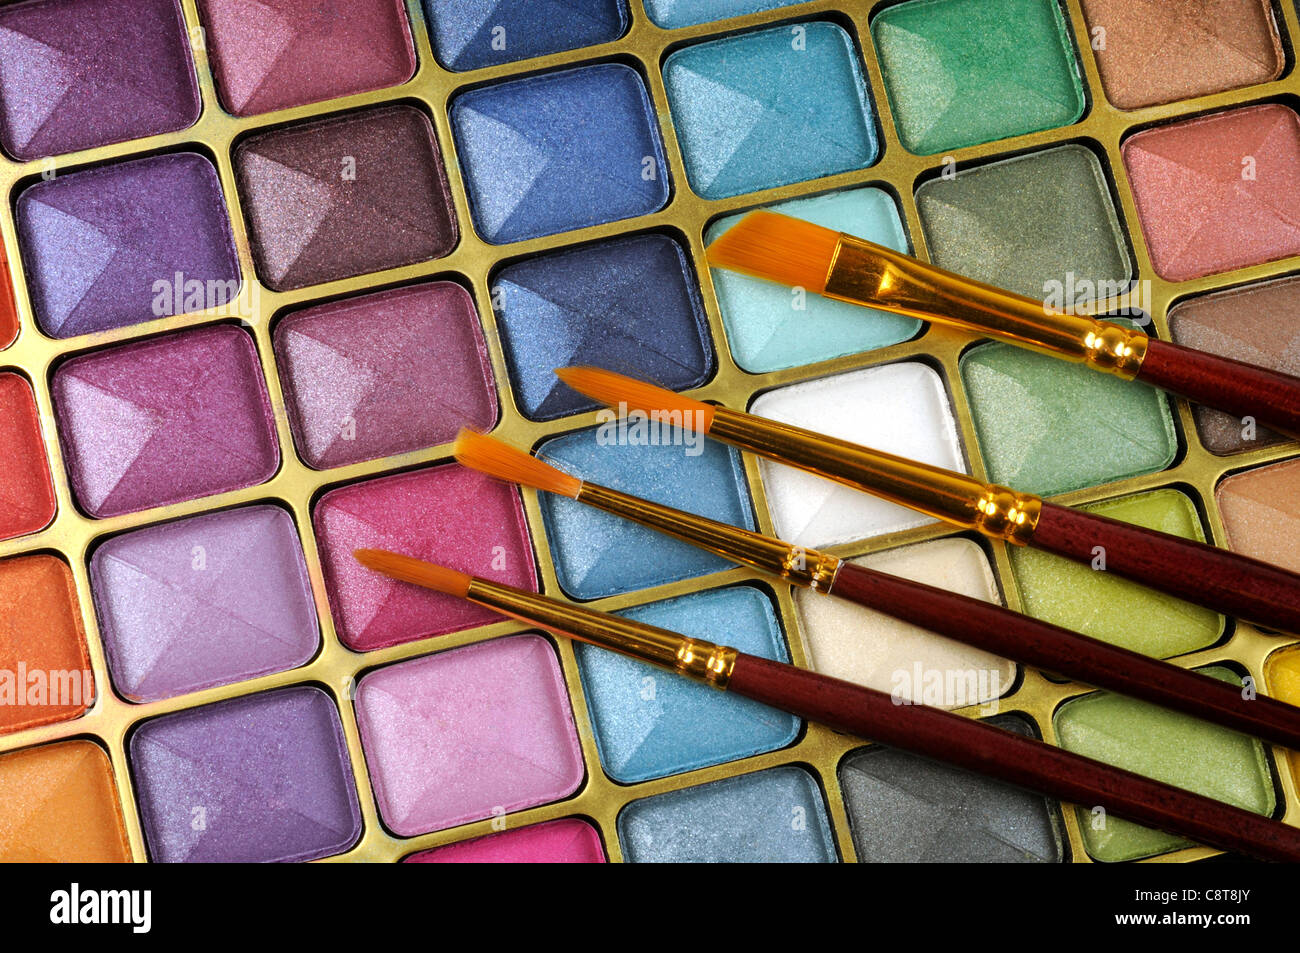 Decorative colorful eyeshadow and brushes , close up shot - Stock Image